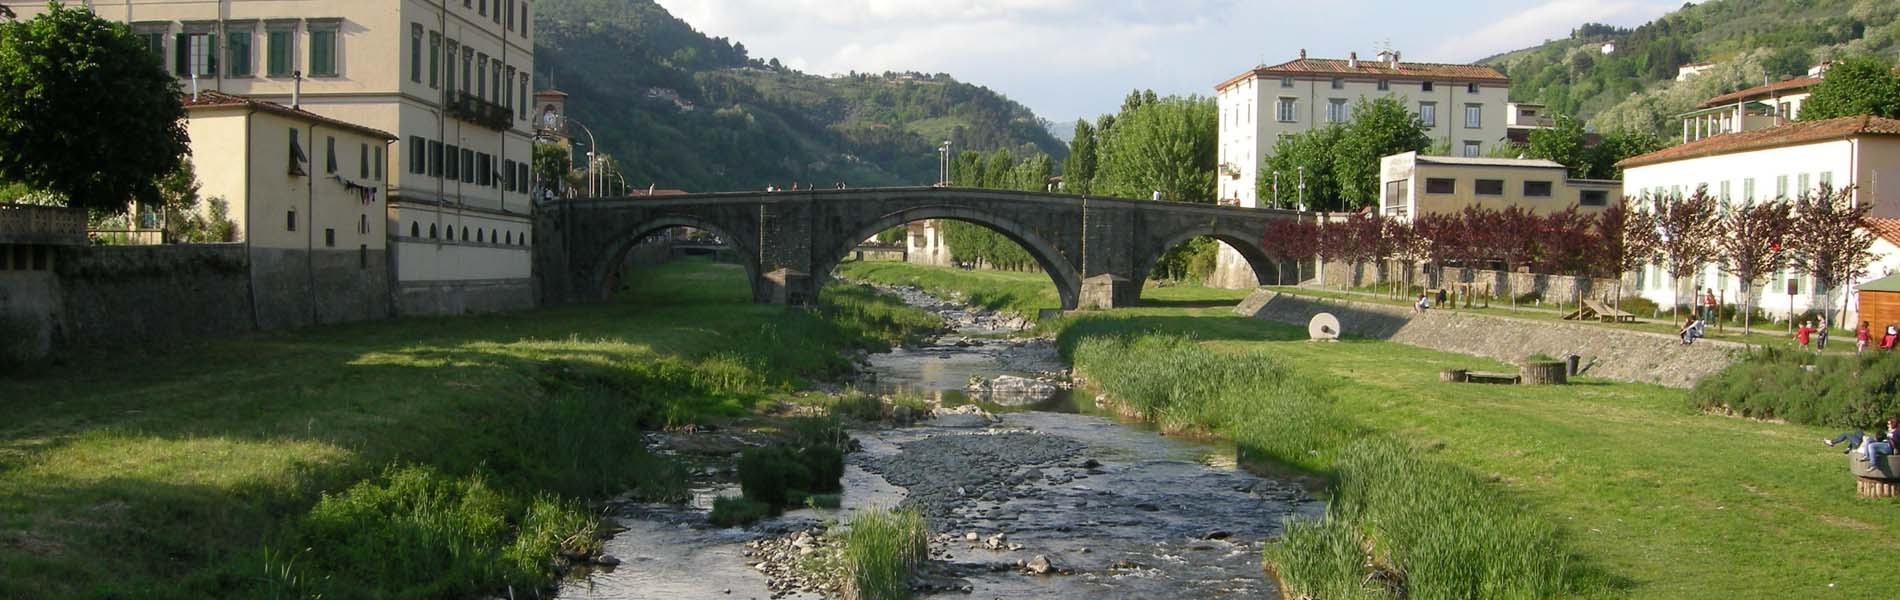 http://www.iltuopaese.com/wp-content/themes/Directory/images/pescia-1.jpg